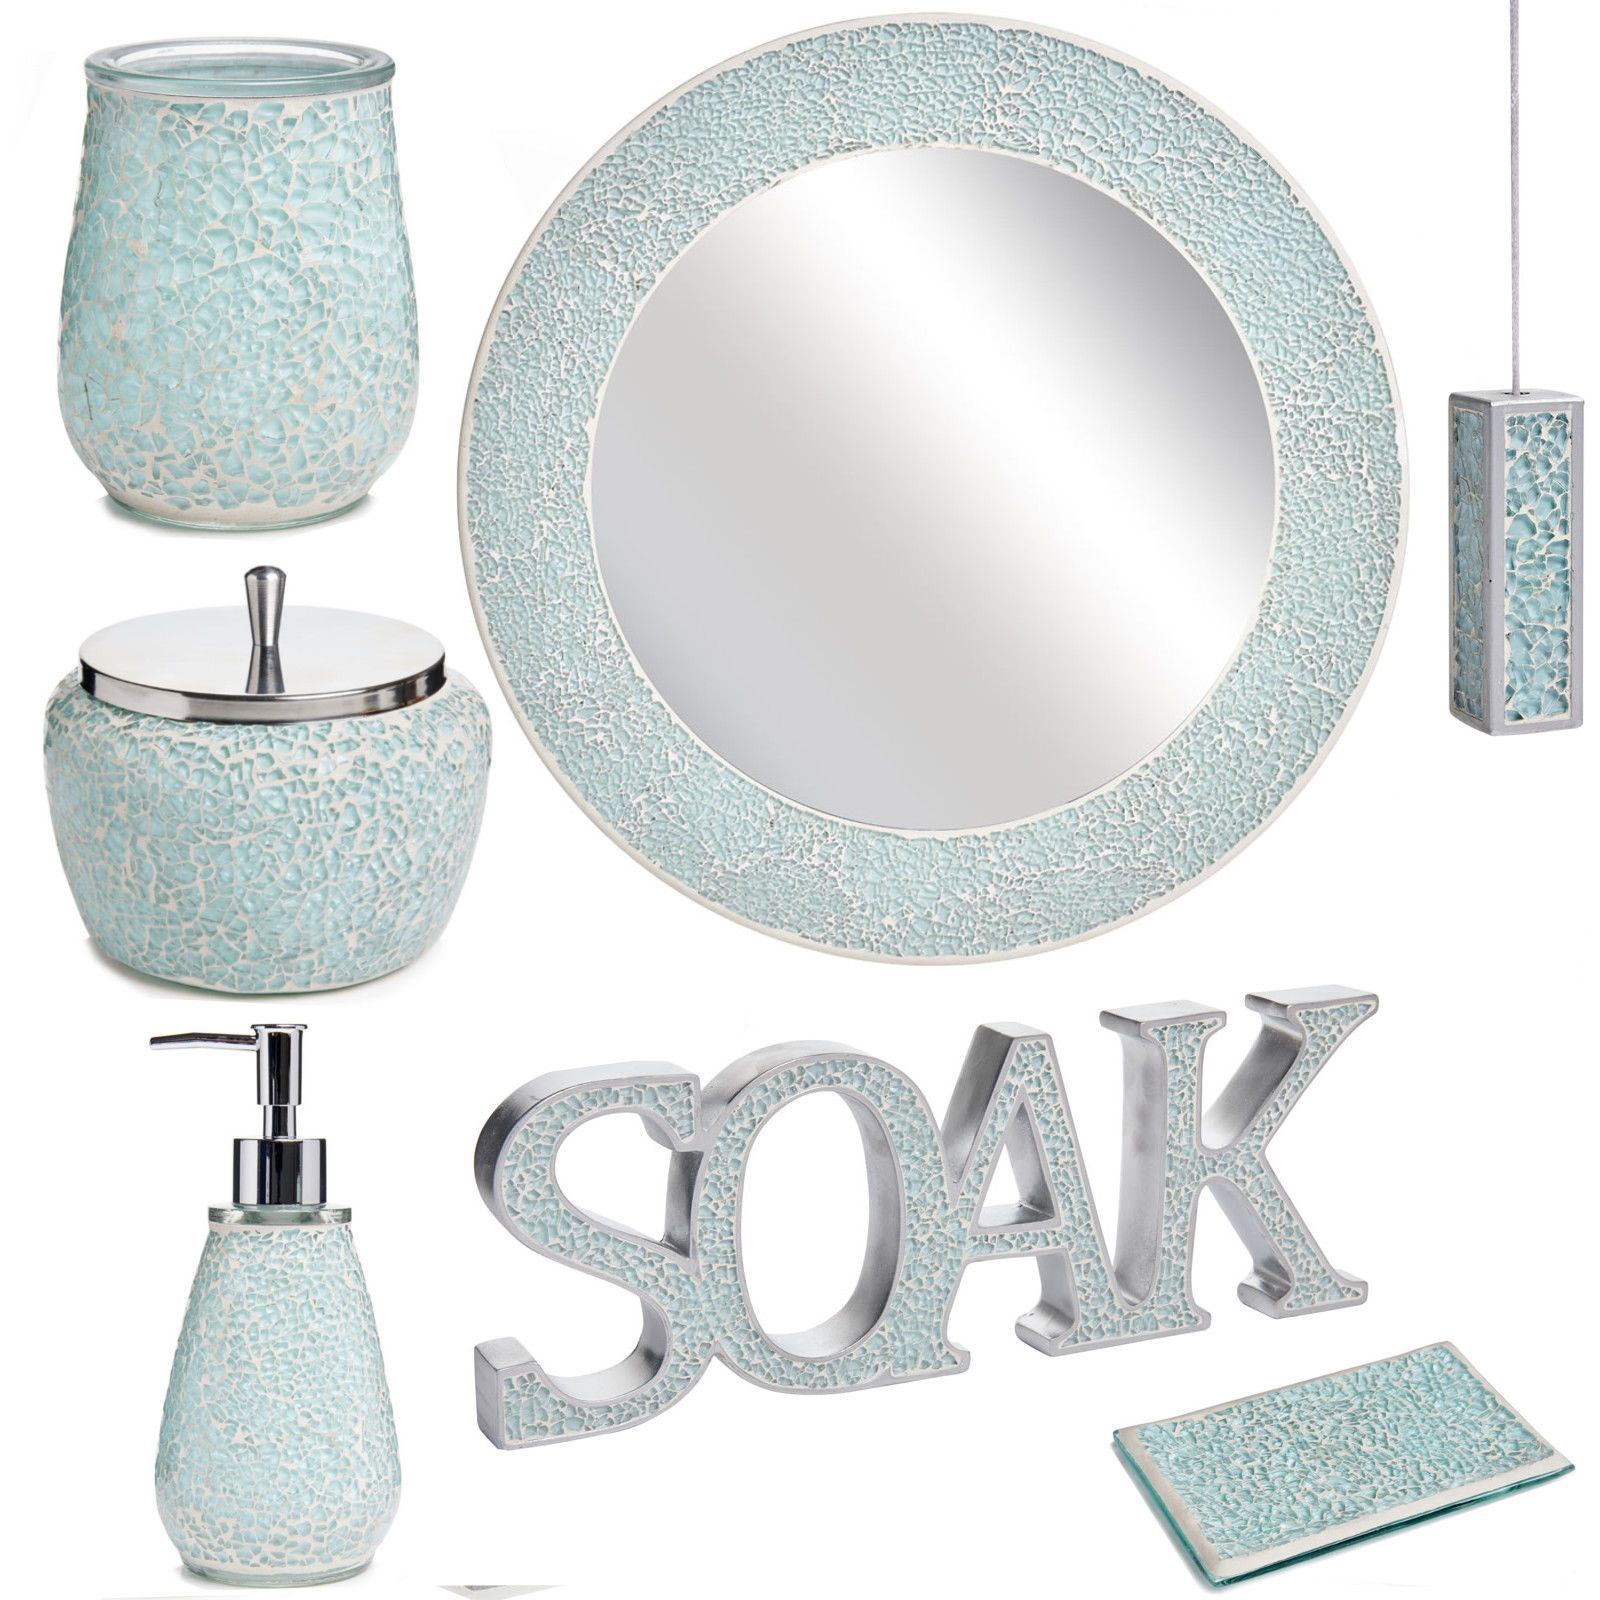 Aqua #sparkle mosaic #bathroom #accessories set, View more on the ...